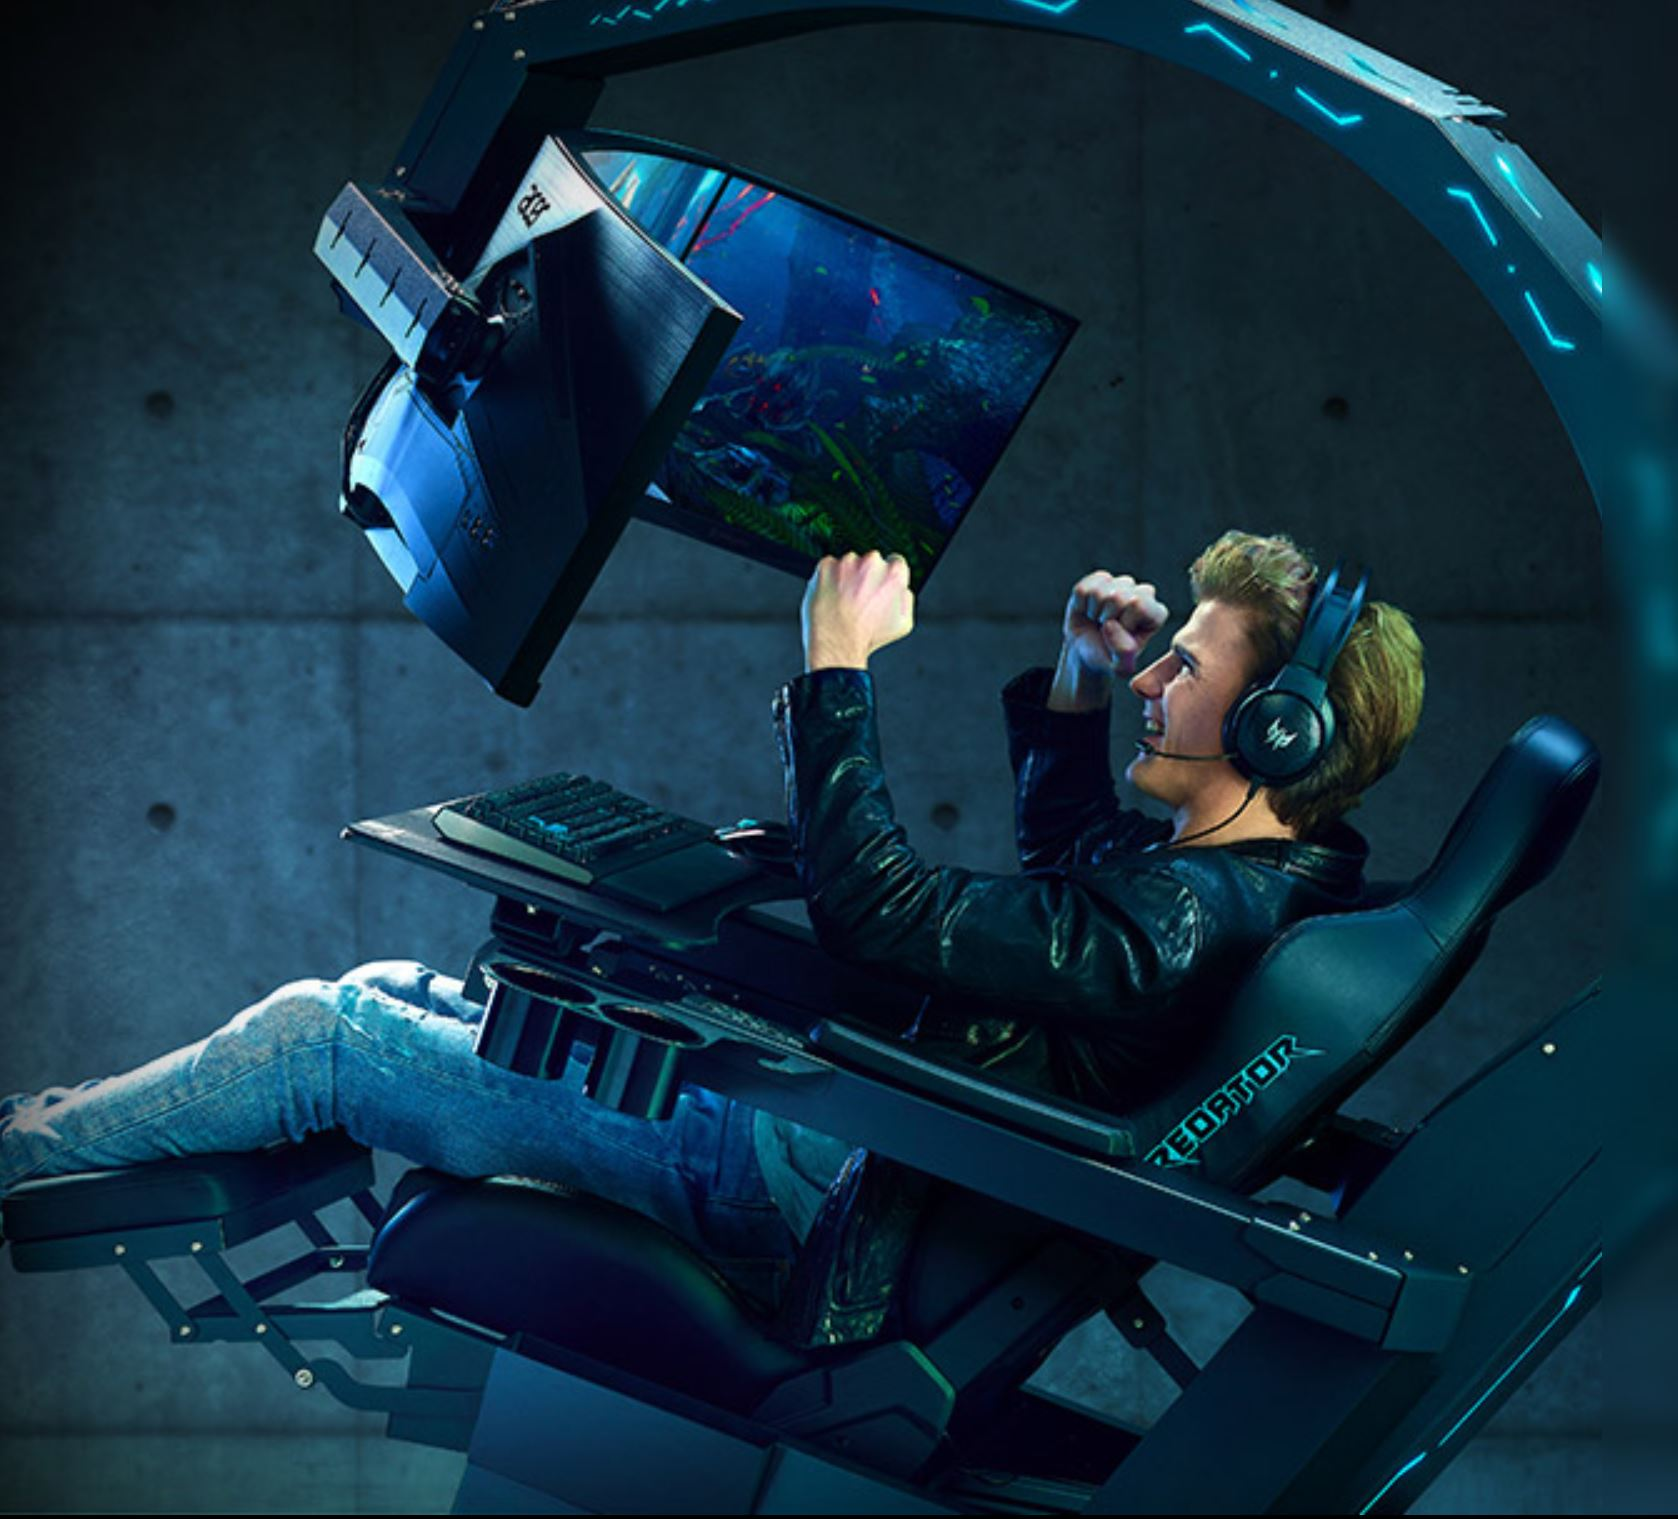 Acer Predator Thronos Air Gaming Chair image Acer Win 12 Red Dot Awards For Innovation & Gaming